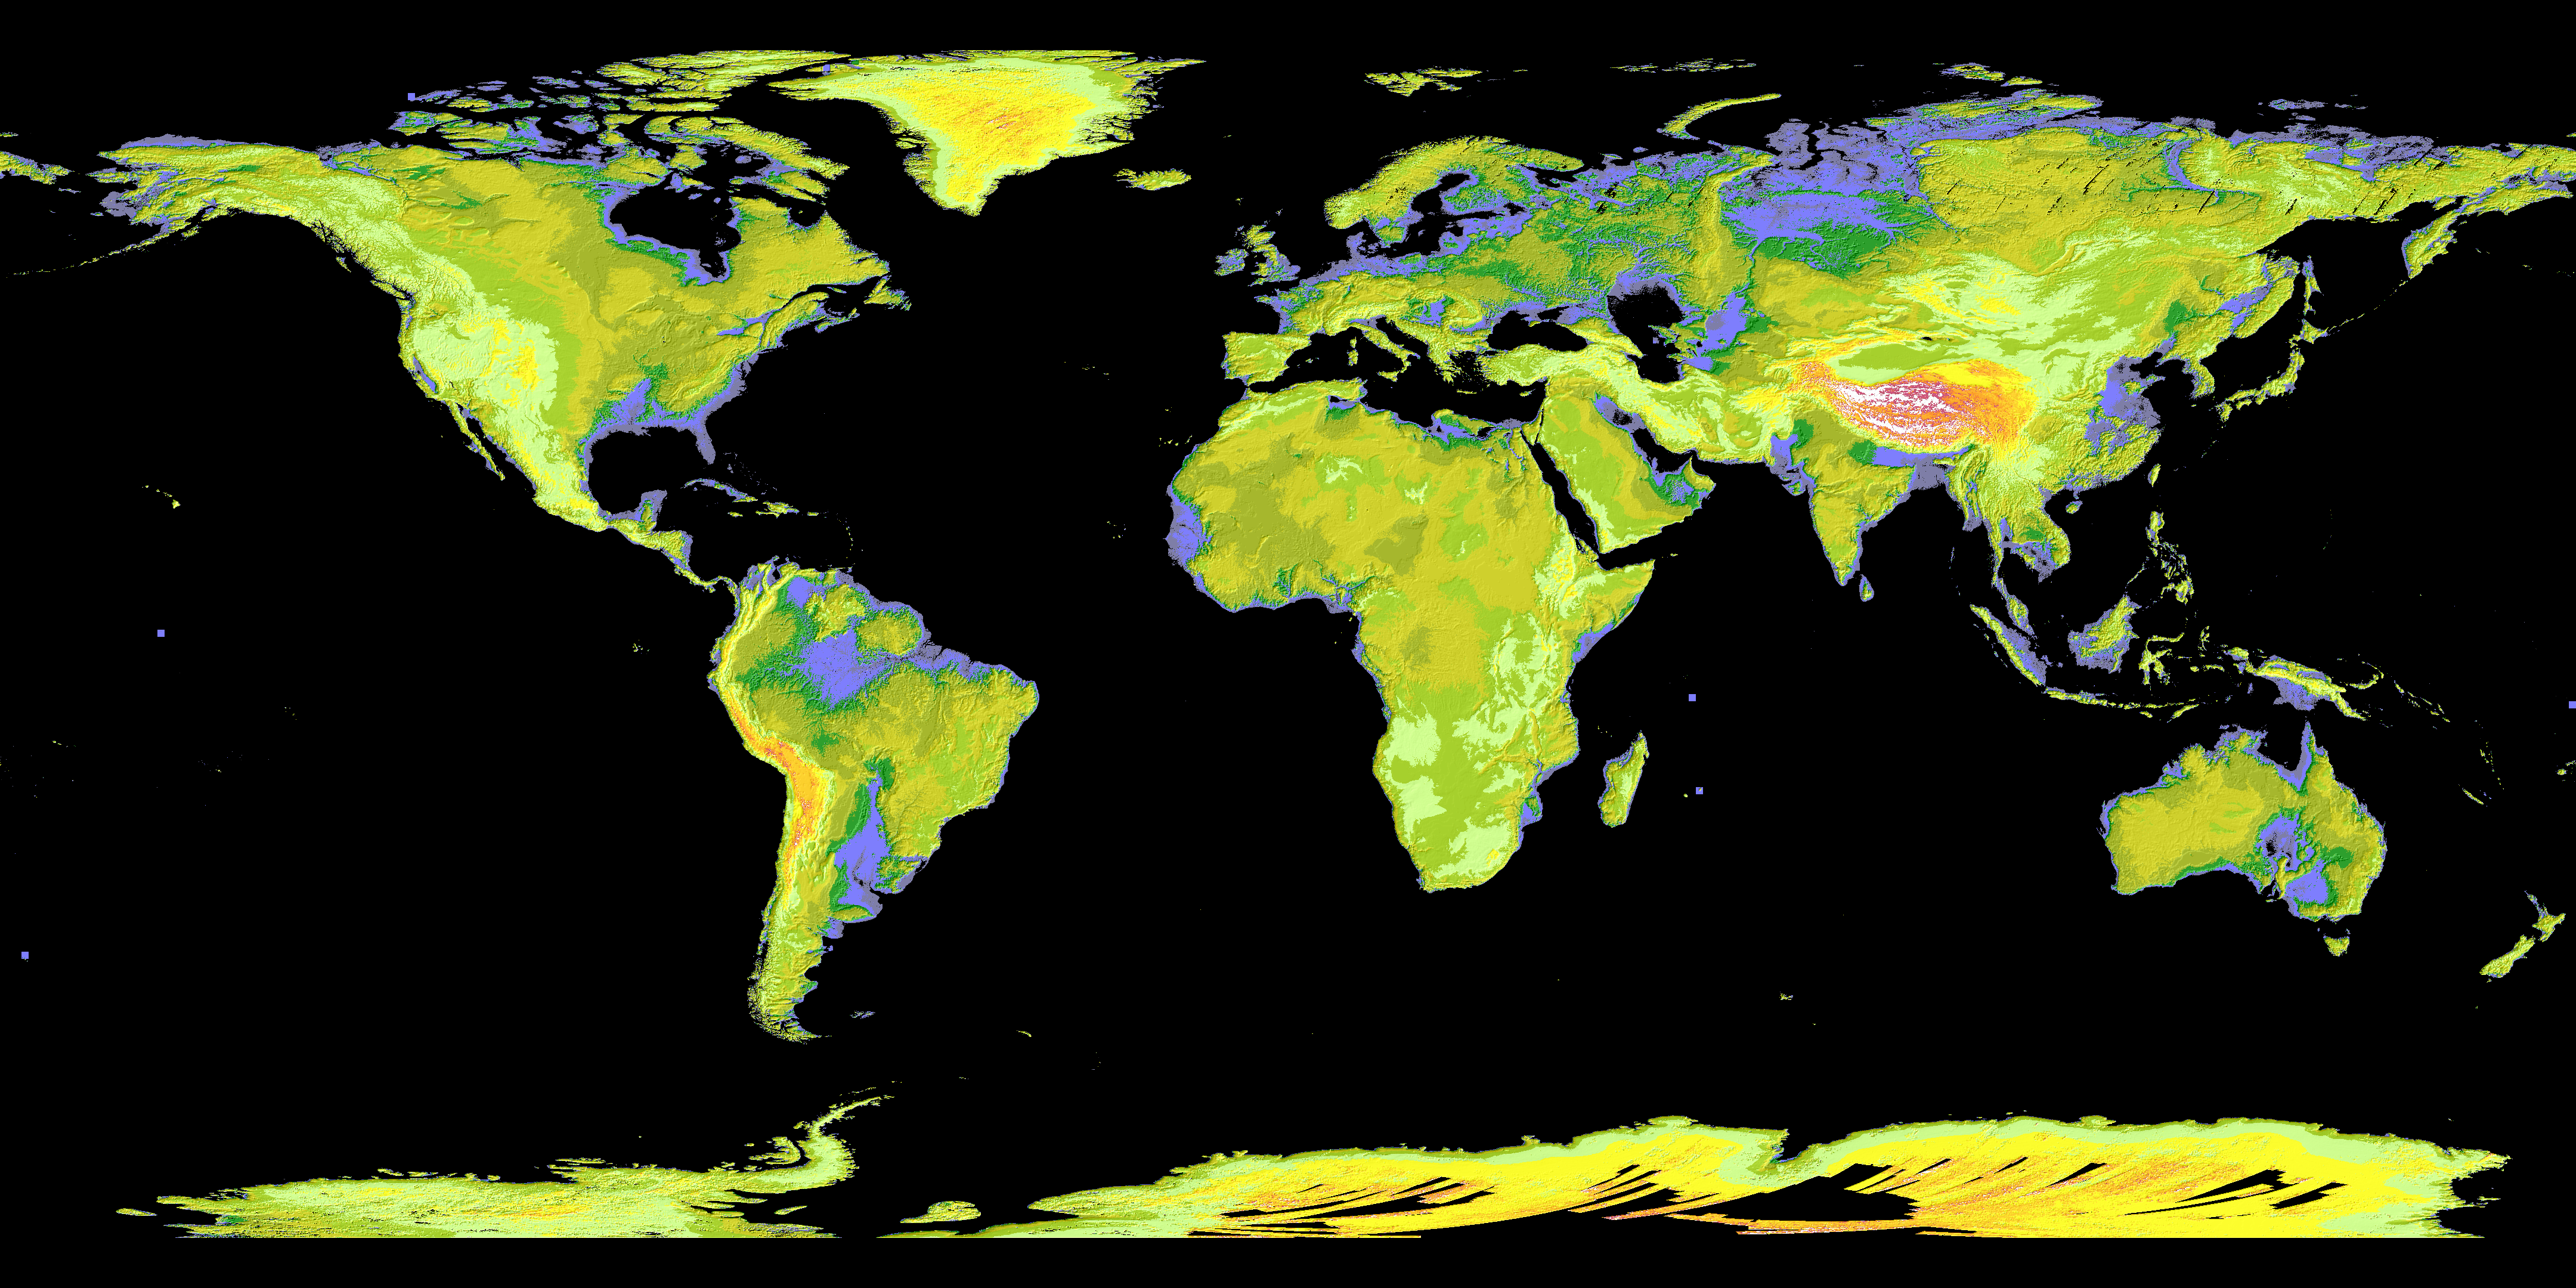 Earth from space 15 amazing things in 15 years digital elevation global digital elevation model map 15 views of earth from space gumiabroncs Choice Image